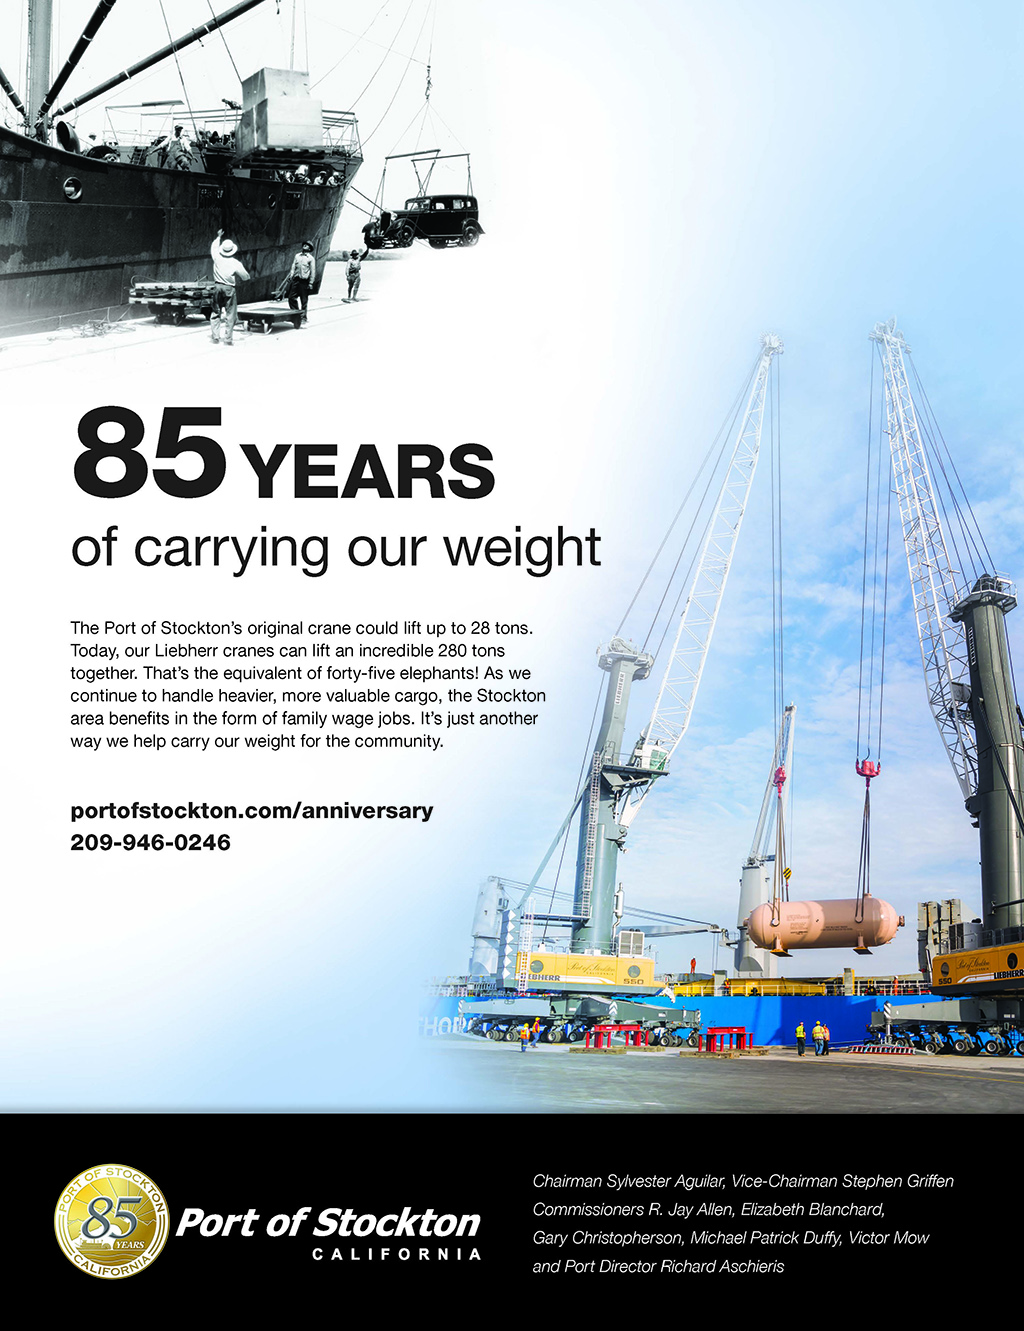 85 Years Carrying Our Weight